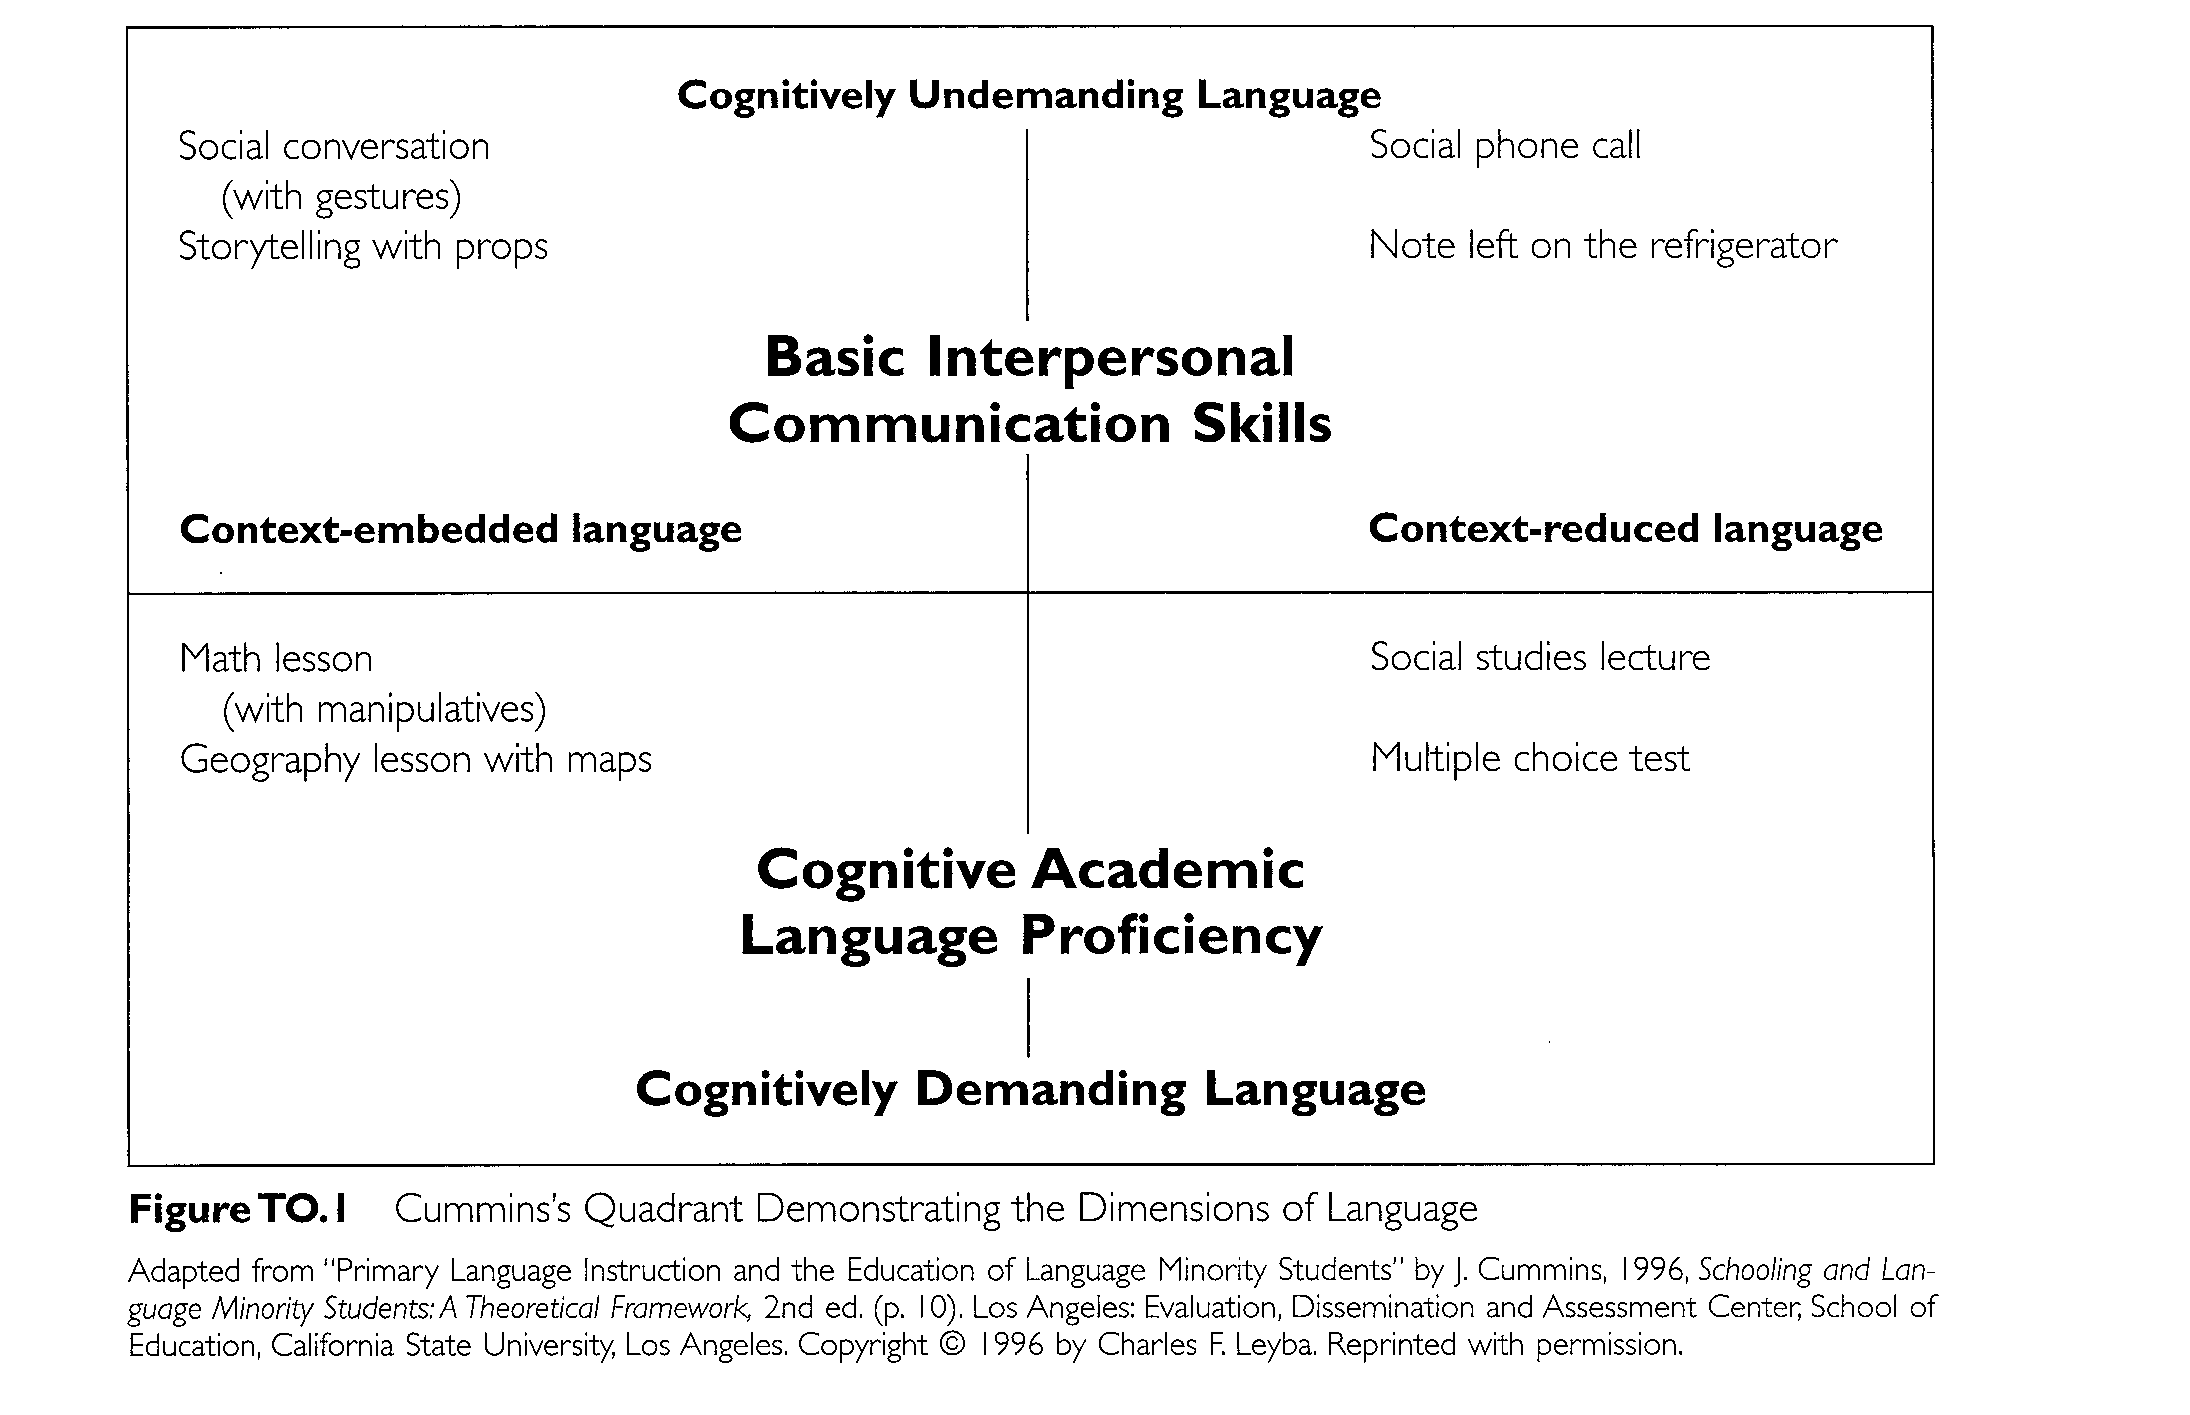 bics and calp essay Many teachers are misled when an ell student sounds fluent, but still struggles academically the reason for this is that there is a clear distinction between social/conversational (bics) and academic (calp) language as defined by cummins.